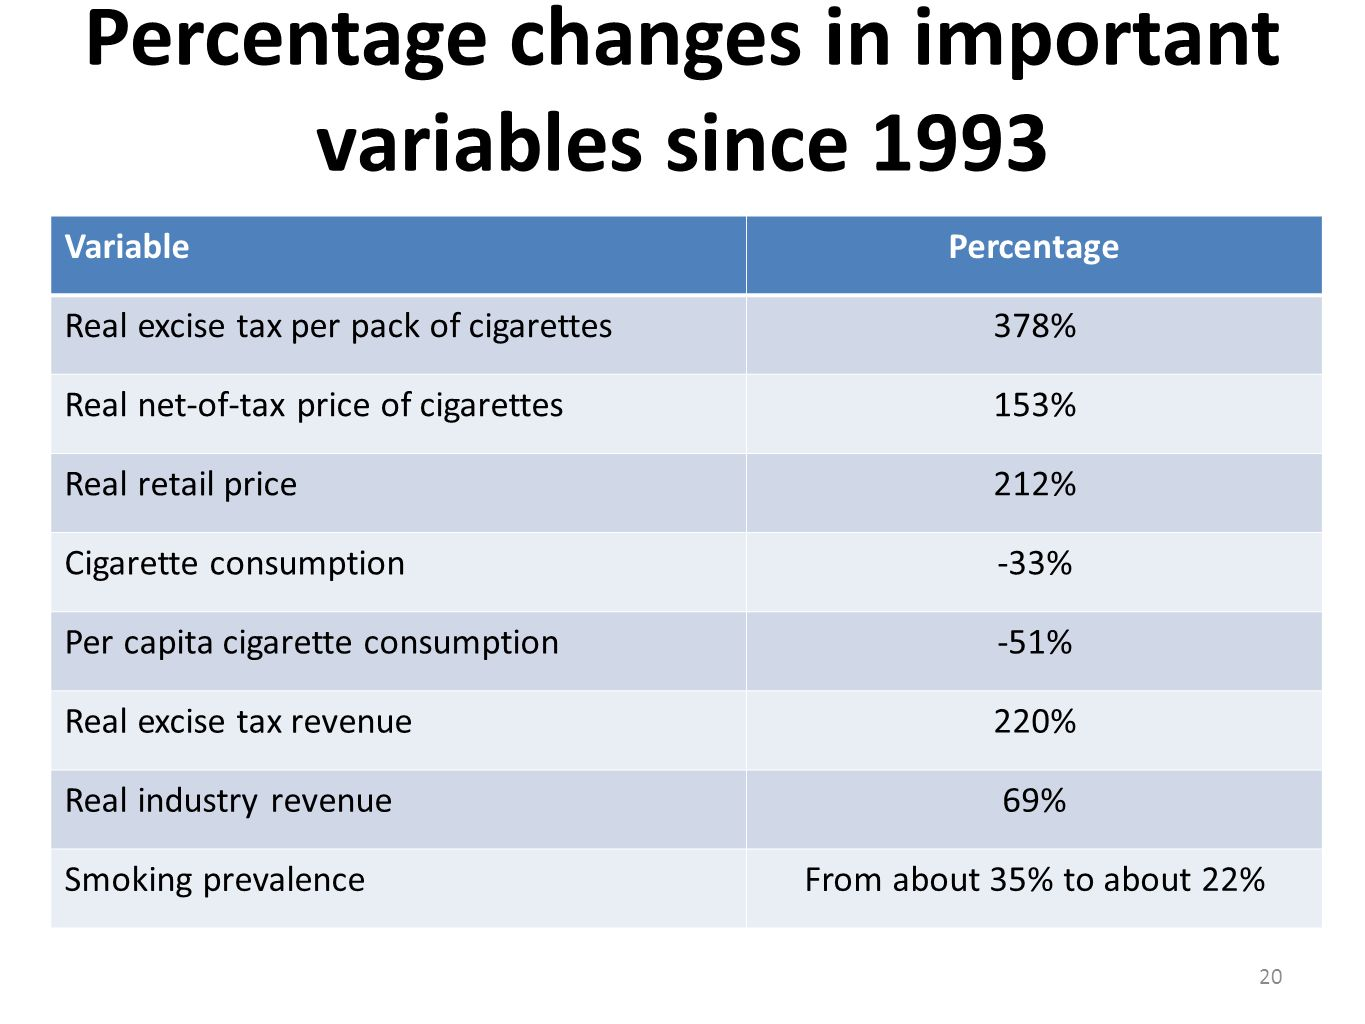 Percentage changes in important variables since 1993